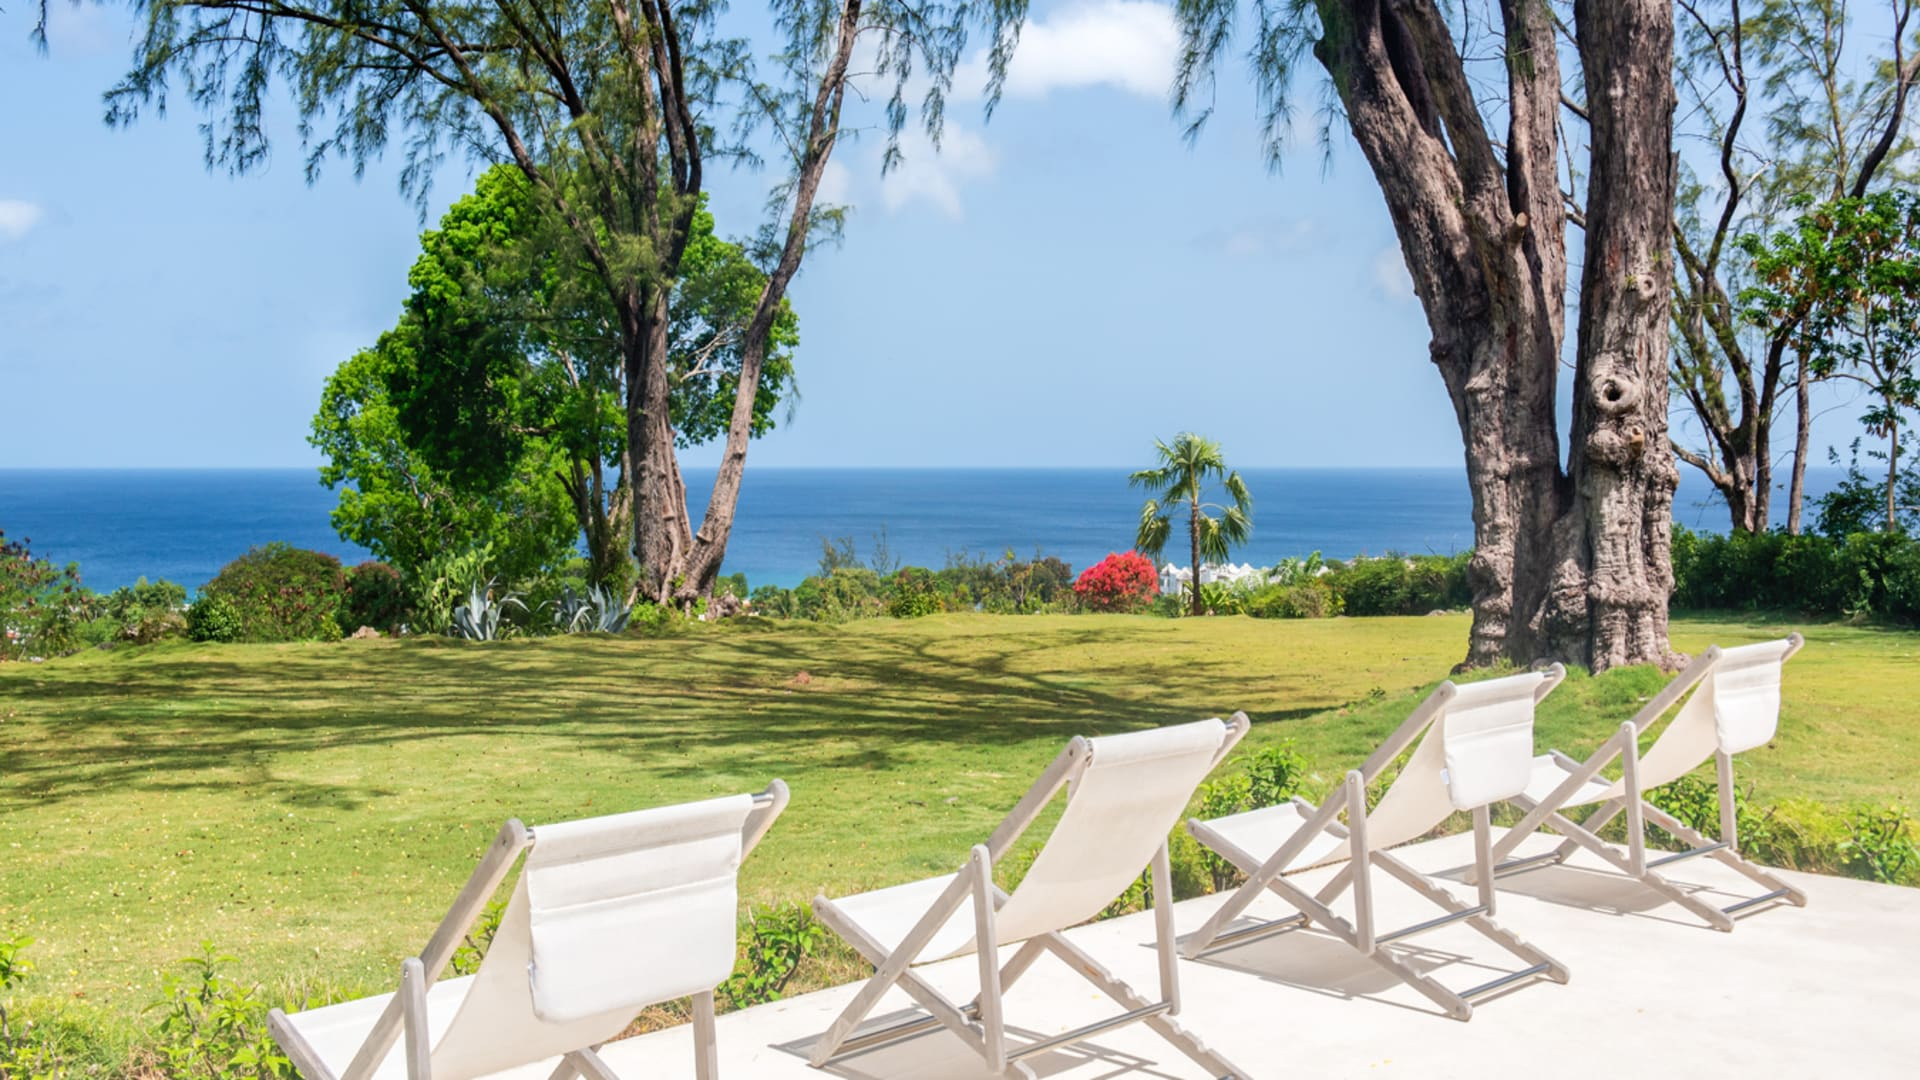 Drake House Pool And Garden With Gorgeous Sea Views View From Pool Deck ...